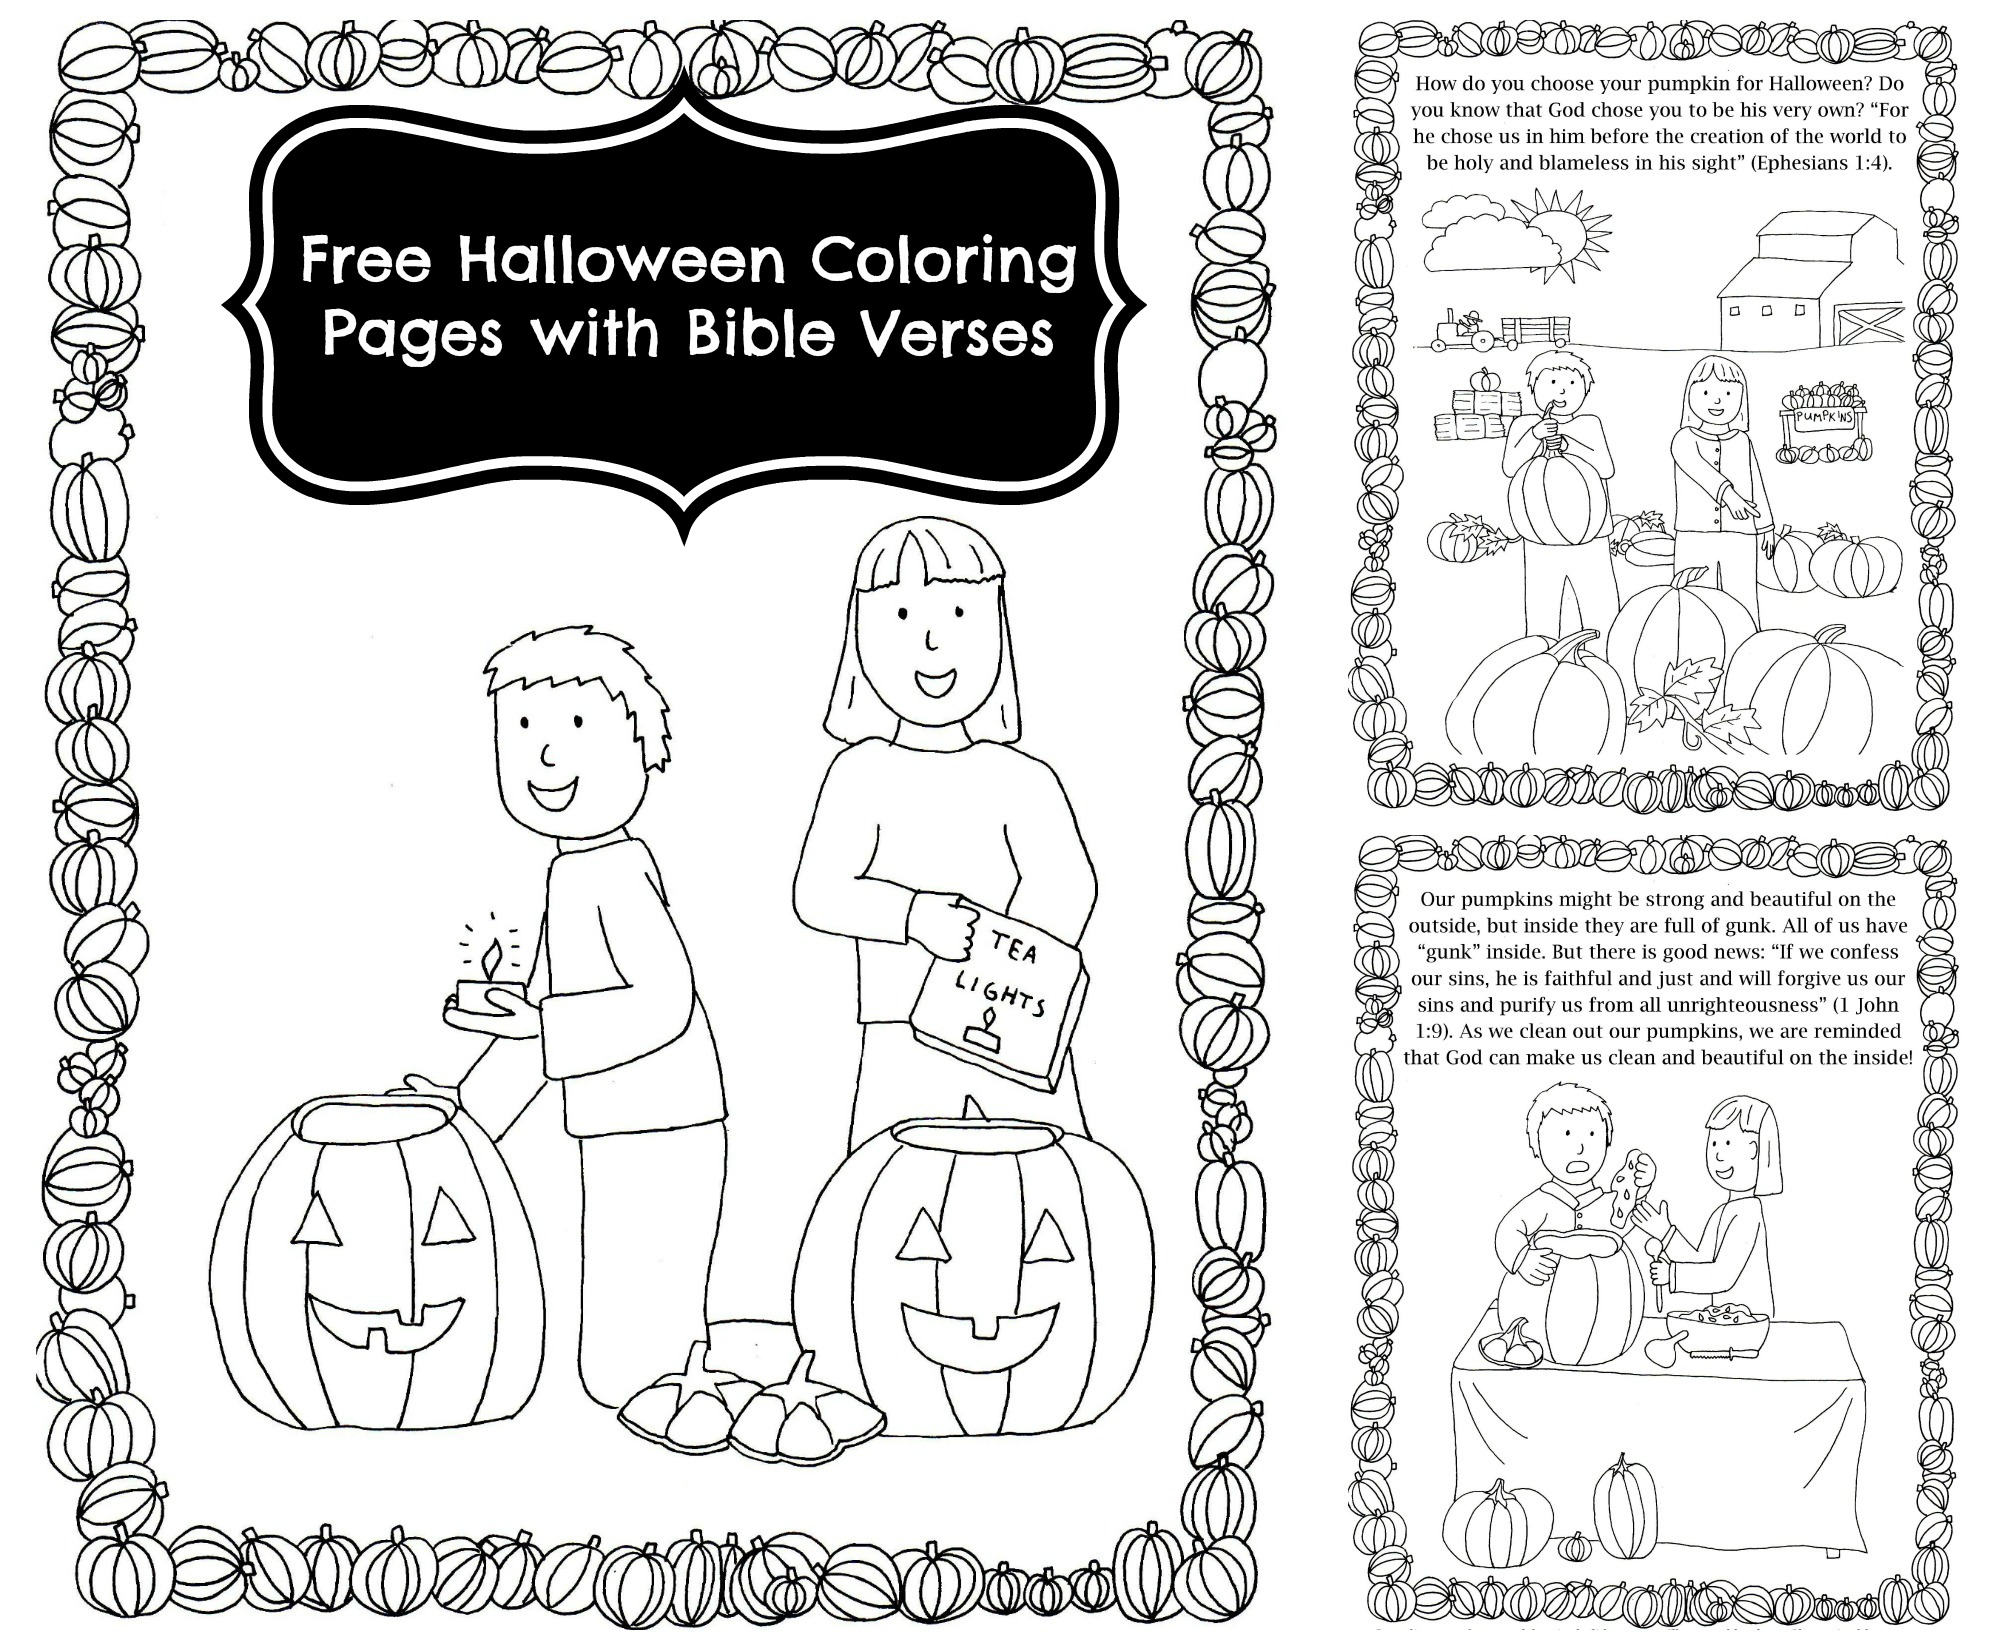 Coloring pages for john 9 - Pumpkin Carving Coloring Pages With Bible Verses